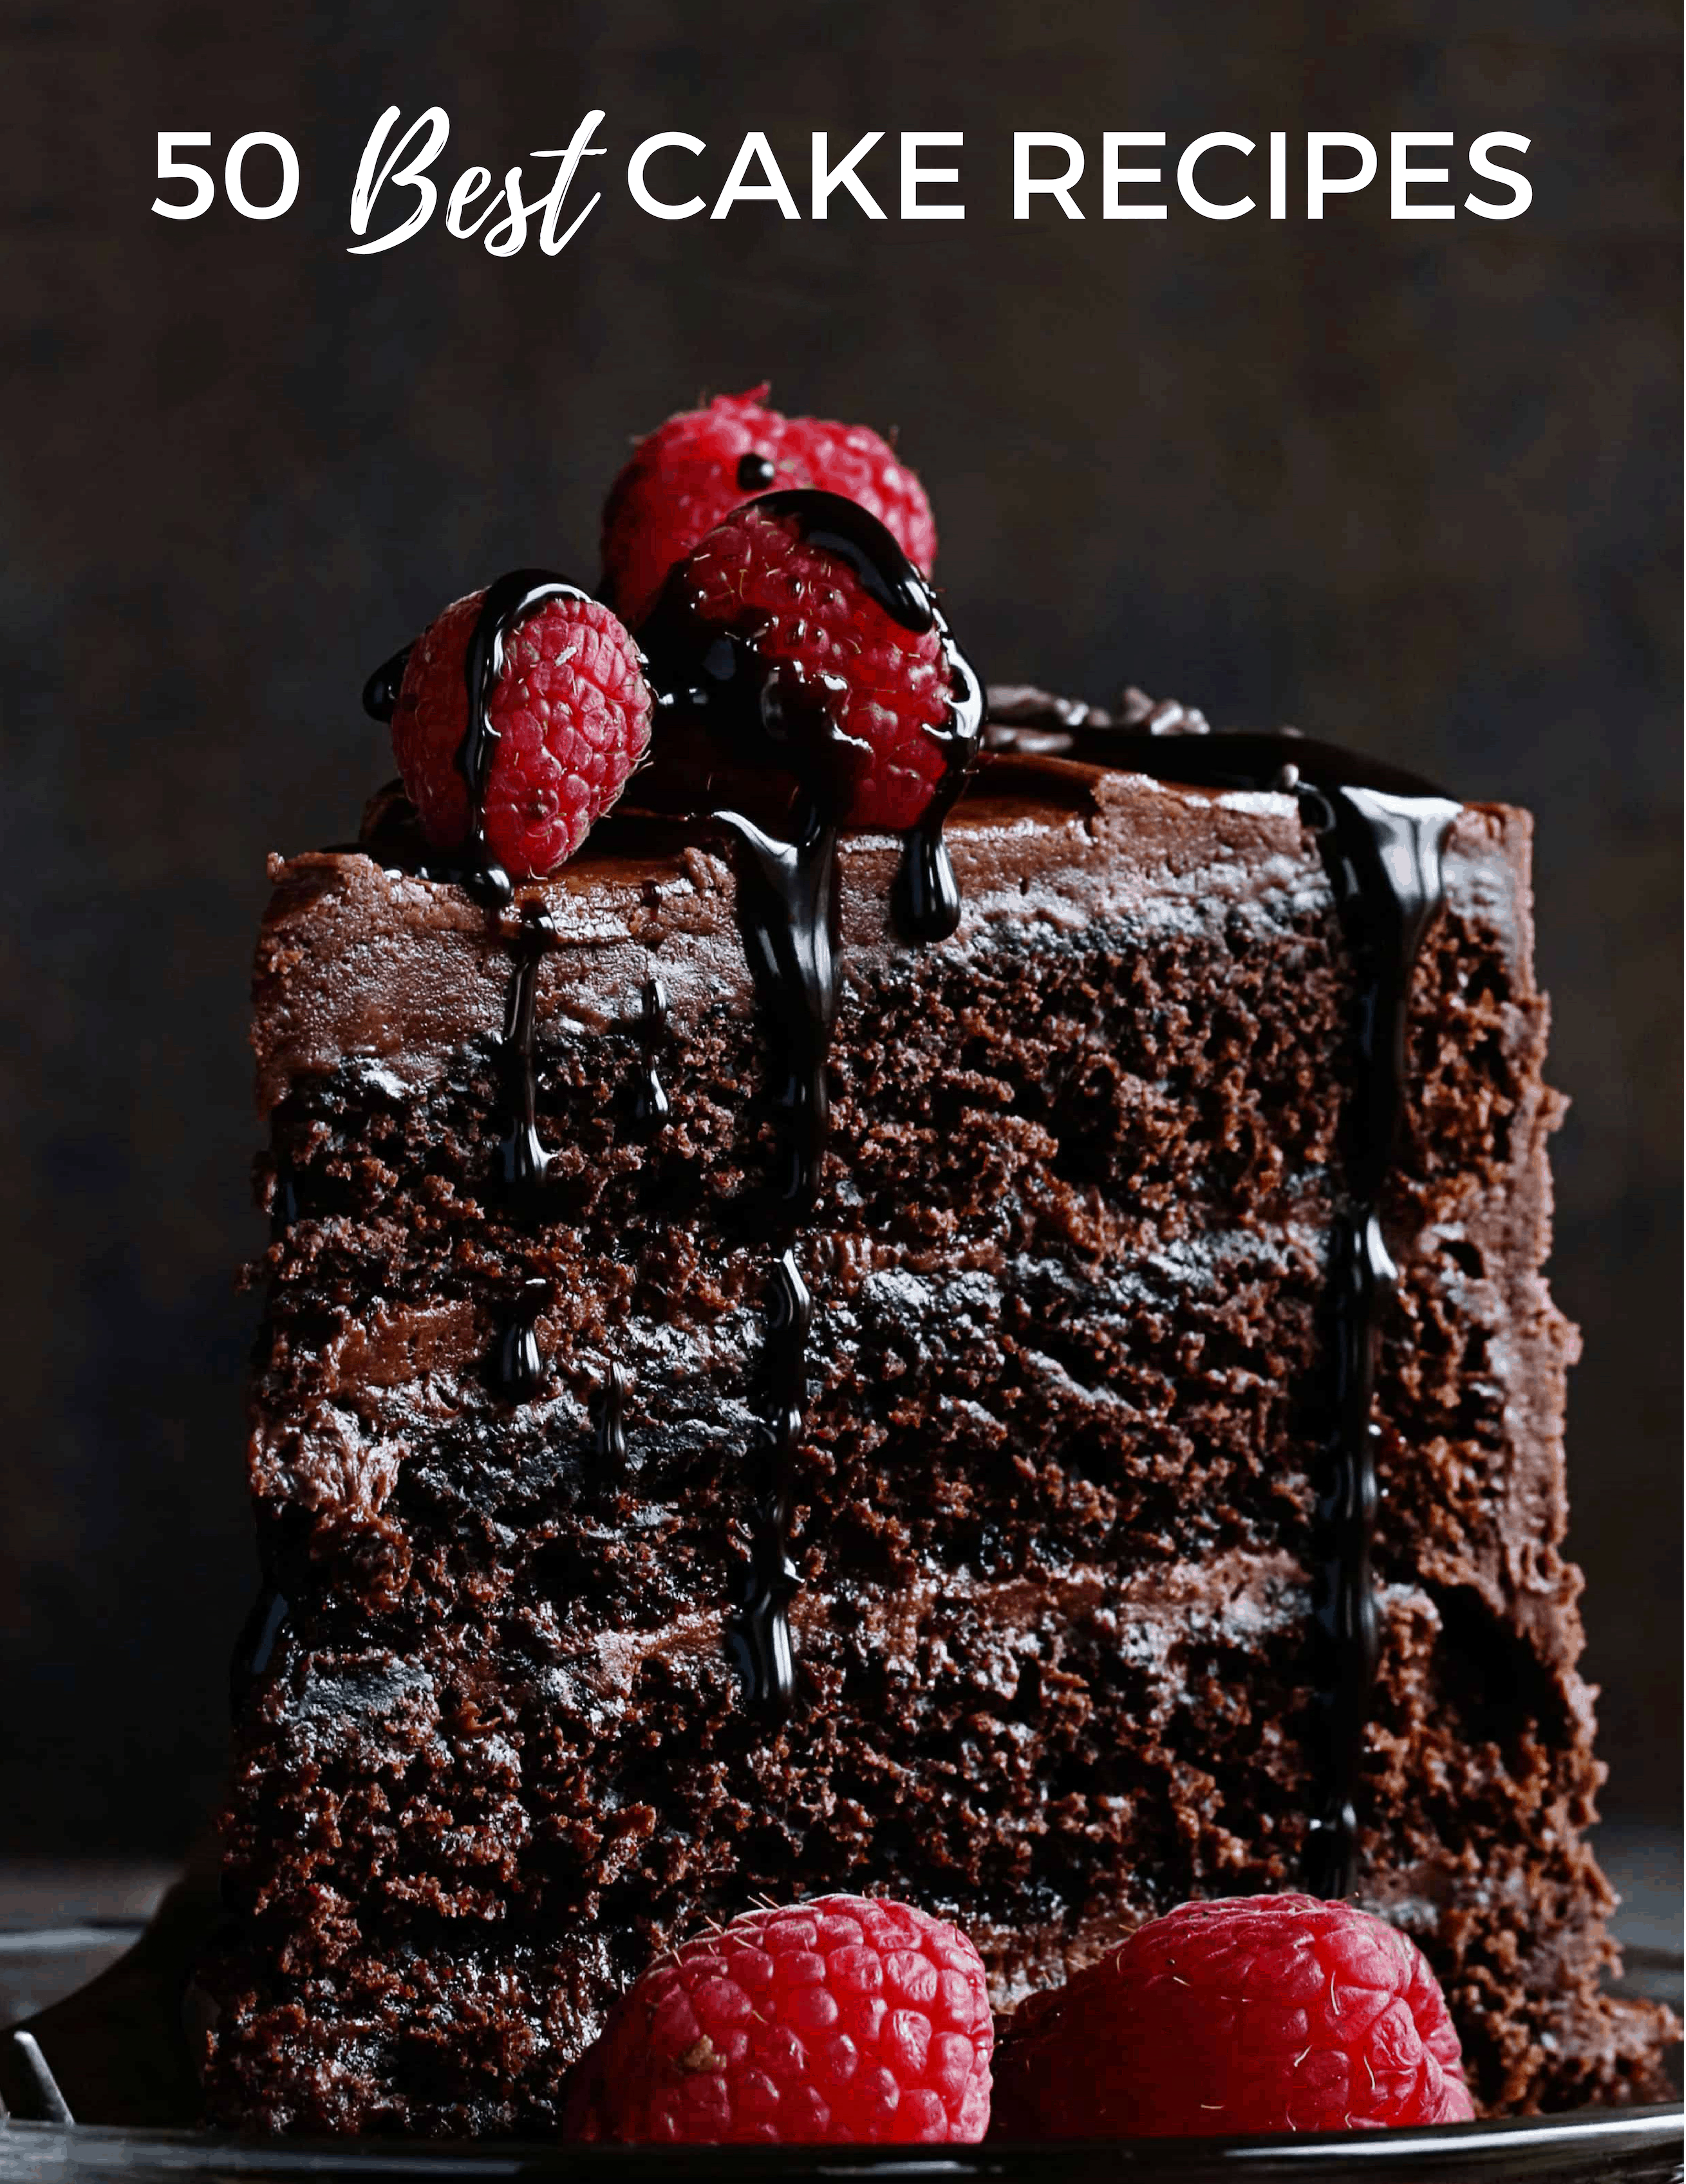 Top 10 Best Cakes In The World : cakes, world, Recipes, World, Baker